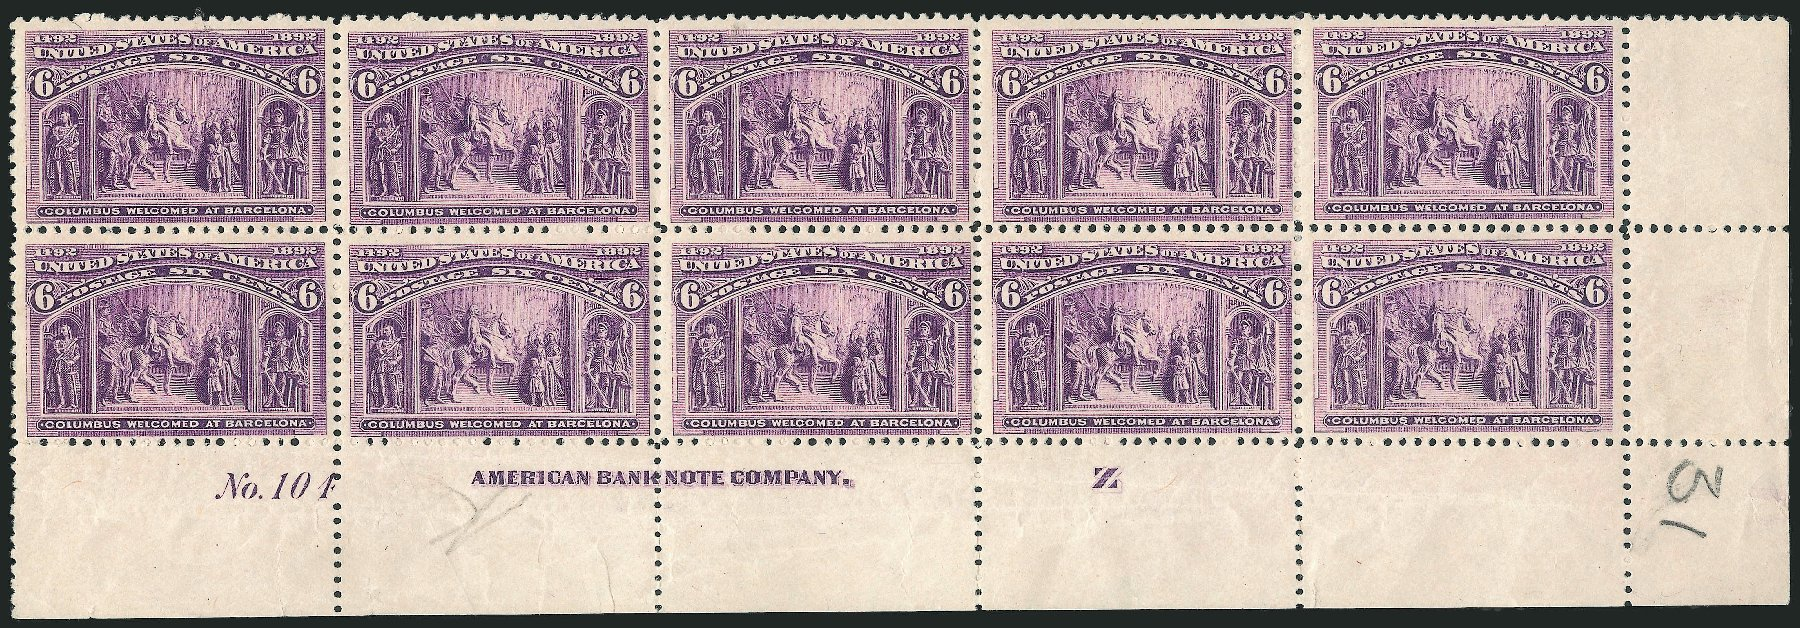 US Stamp Price Scott # 235 - 6c 1893 Columbian Exposition. Robert Siegel Auction Galleries, Jul 2015, Sale 1107, Lot 317